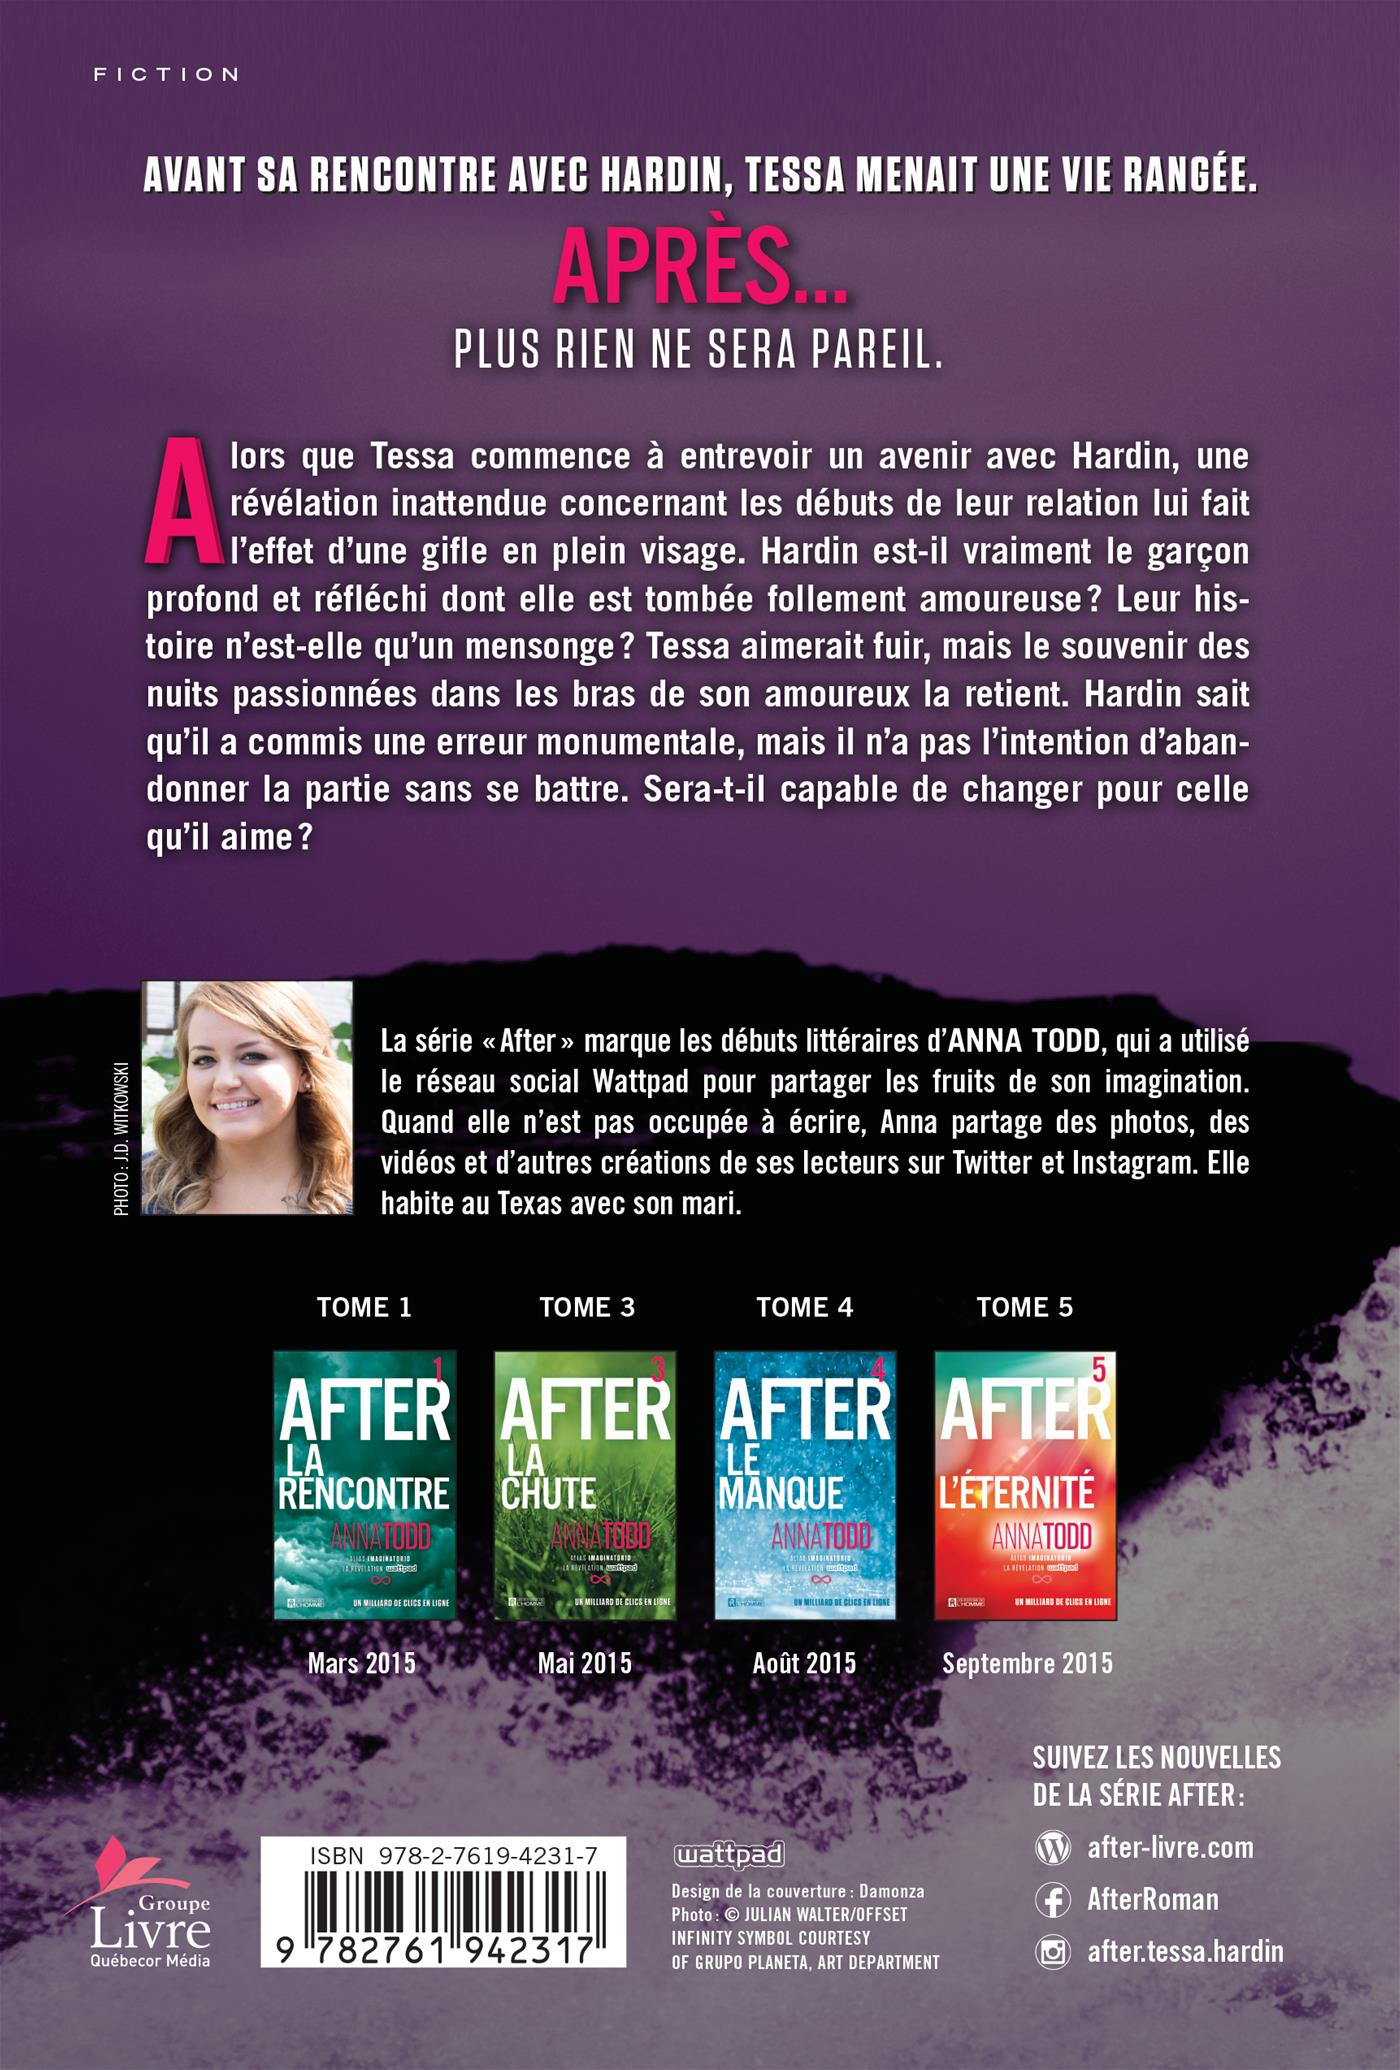 After T.2 : La collision - Anna Todd revers